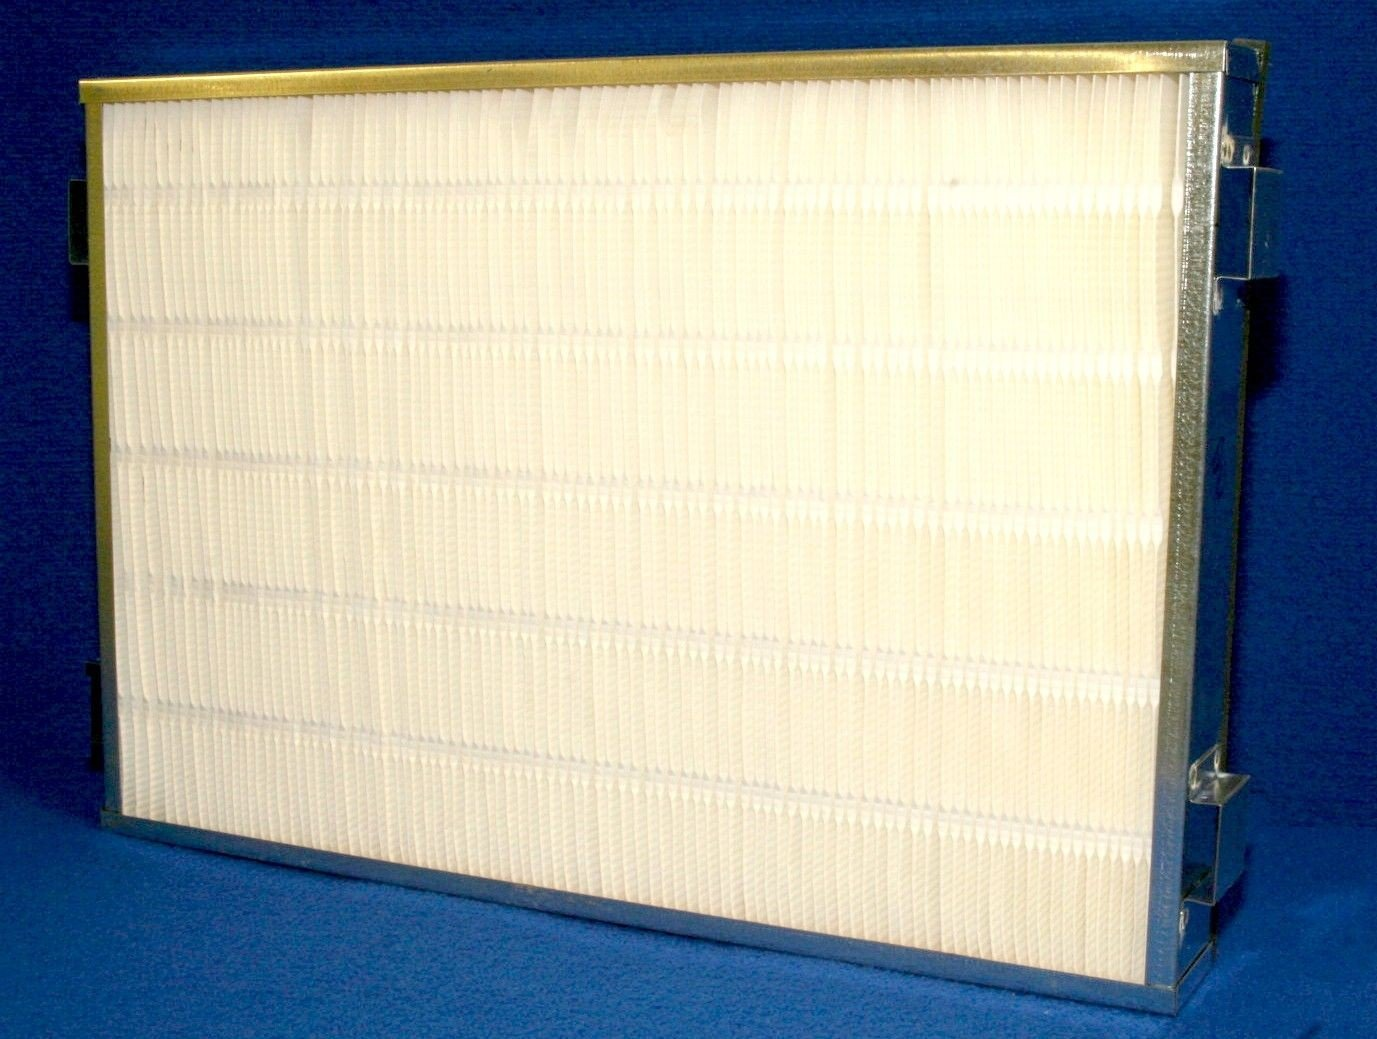 Tennant Panel Dust Air Filter 1037199AM Fits 3640 Floor Sweeper Machine by Tennant